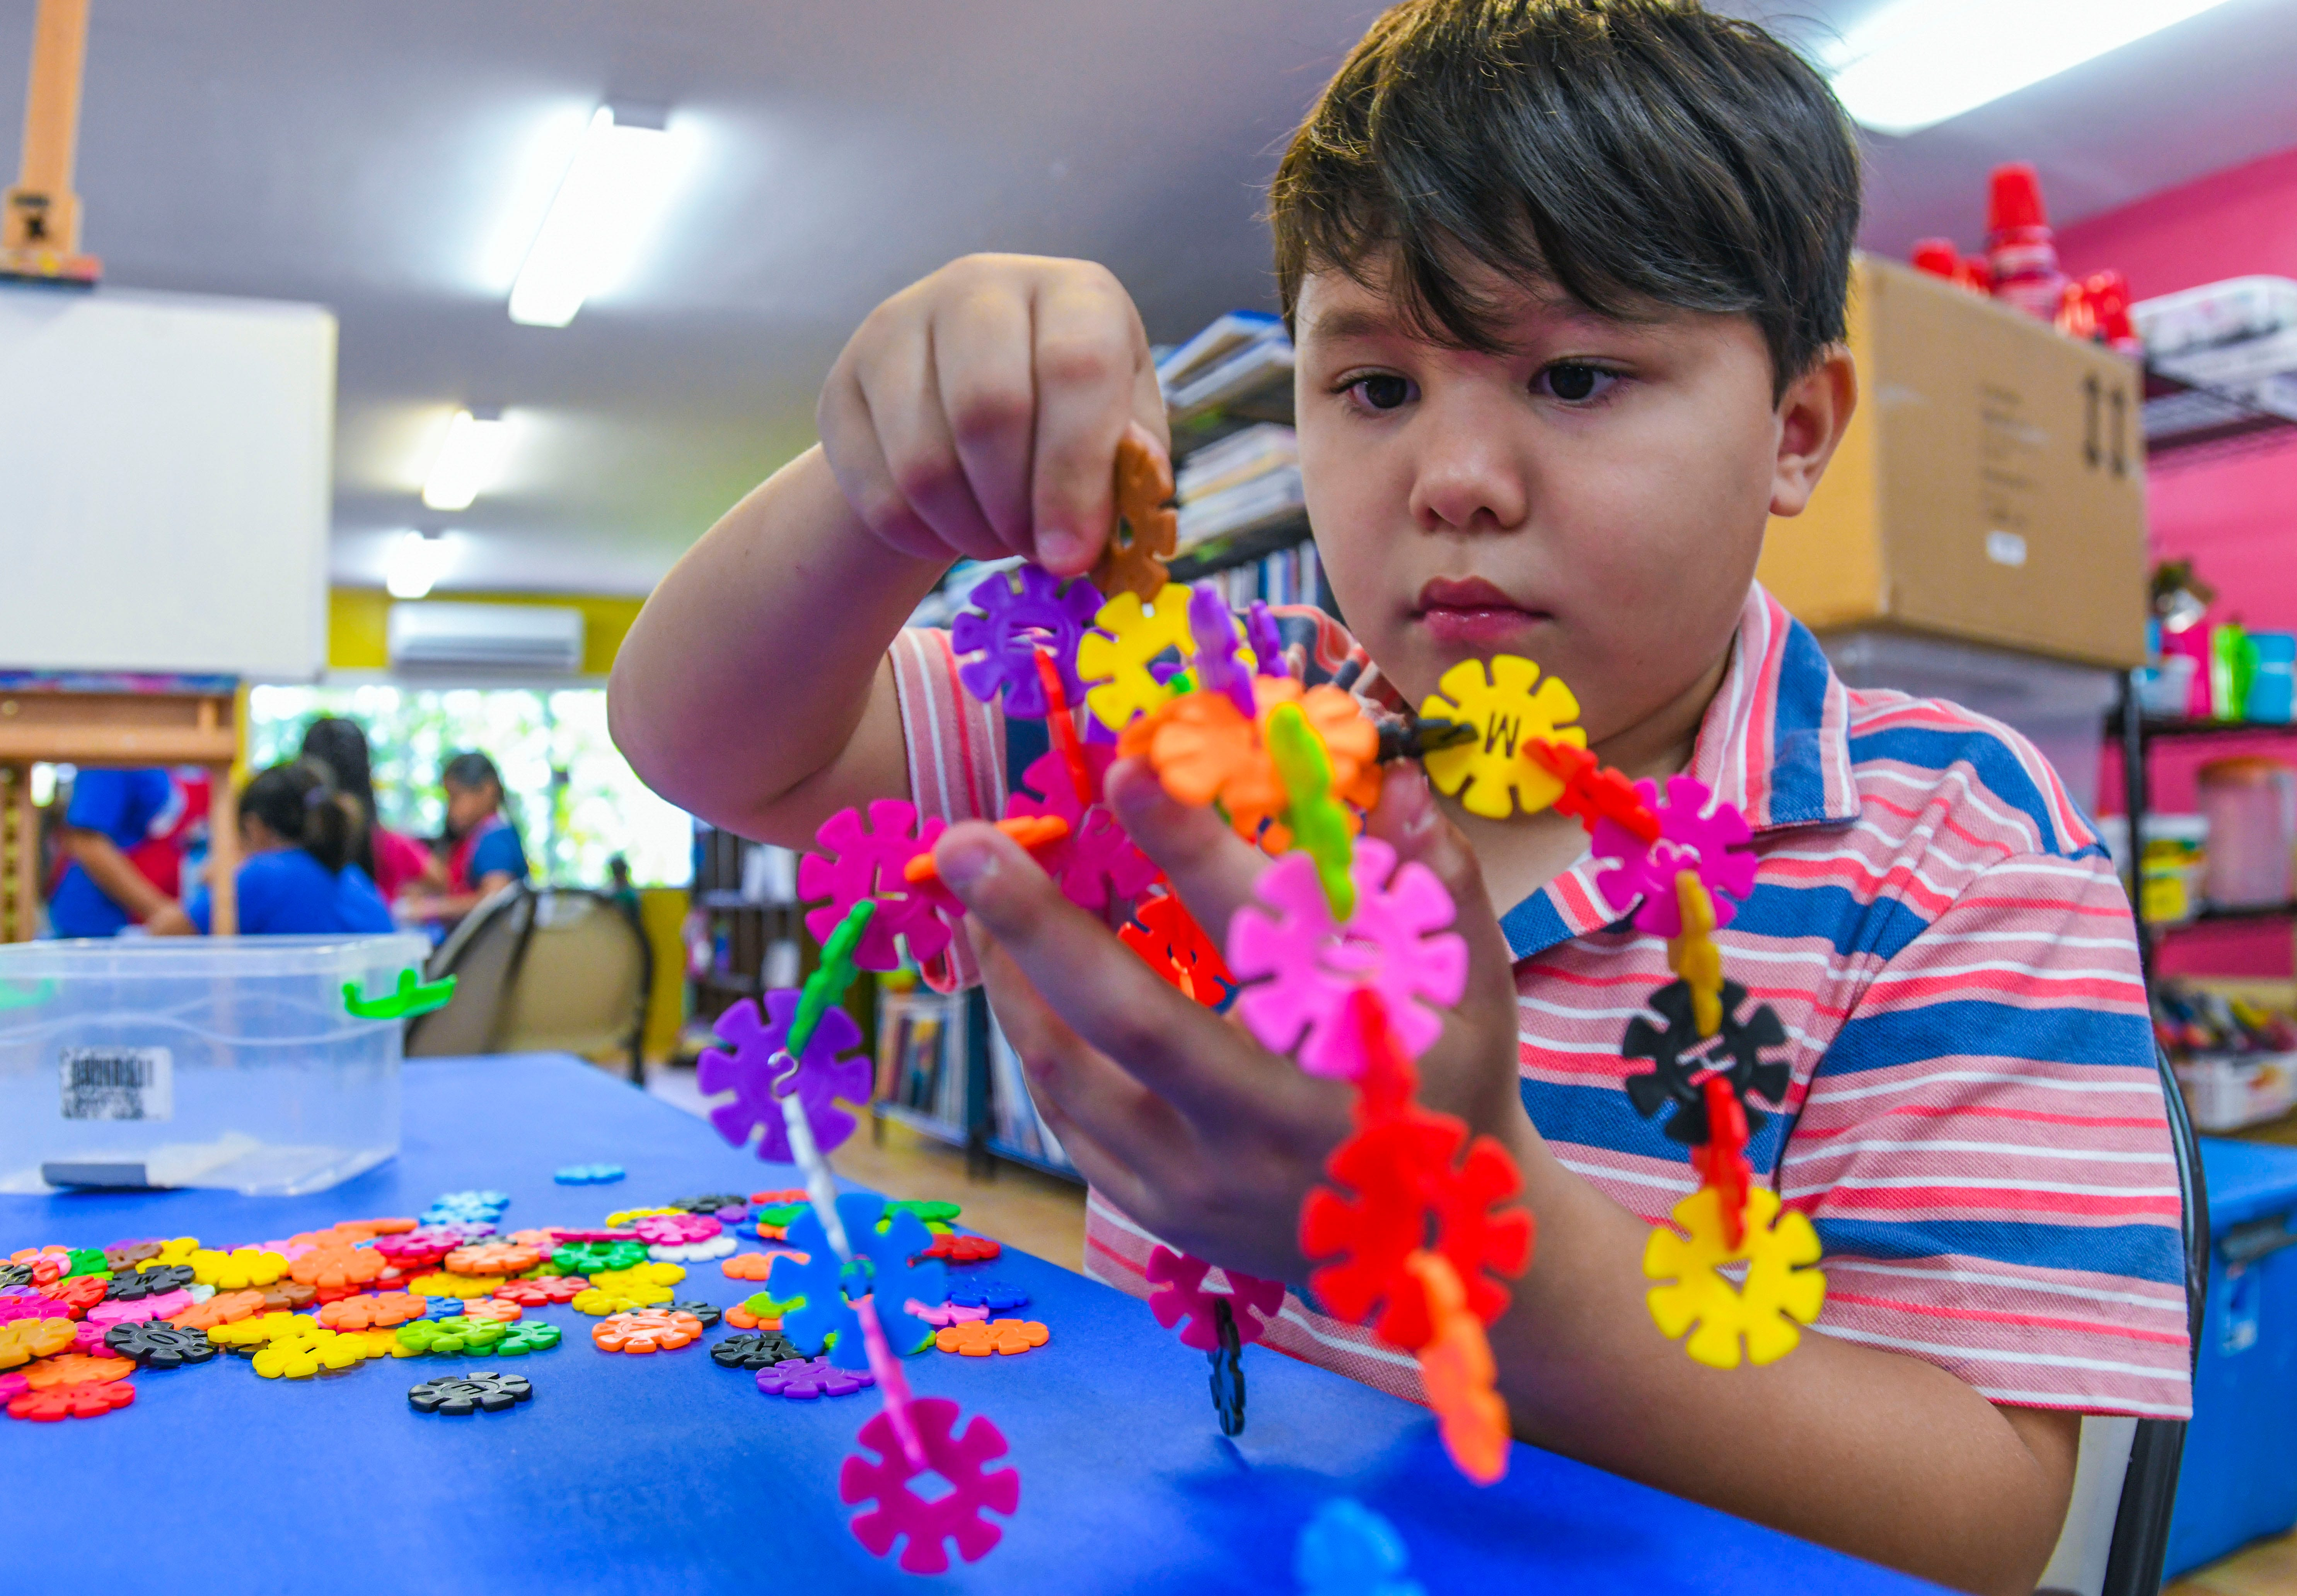 Russell Strohmeyer connects discs together as he engages in the STEM activity to create his concept of a walking robot during an art session at the Color Guam art studio in Hagåtña in this June 14, 2019, file photo.